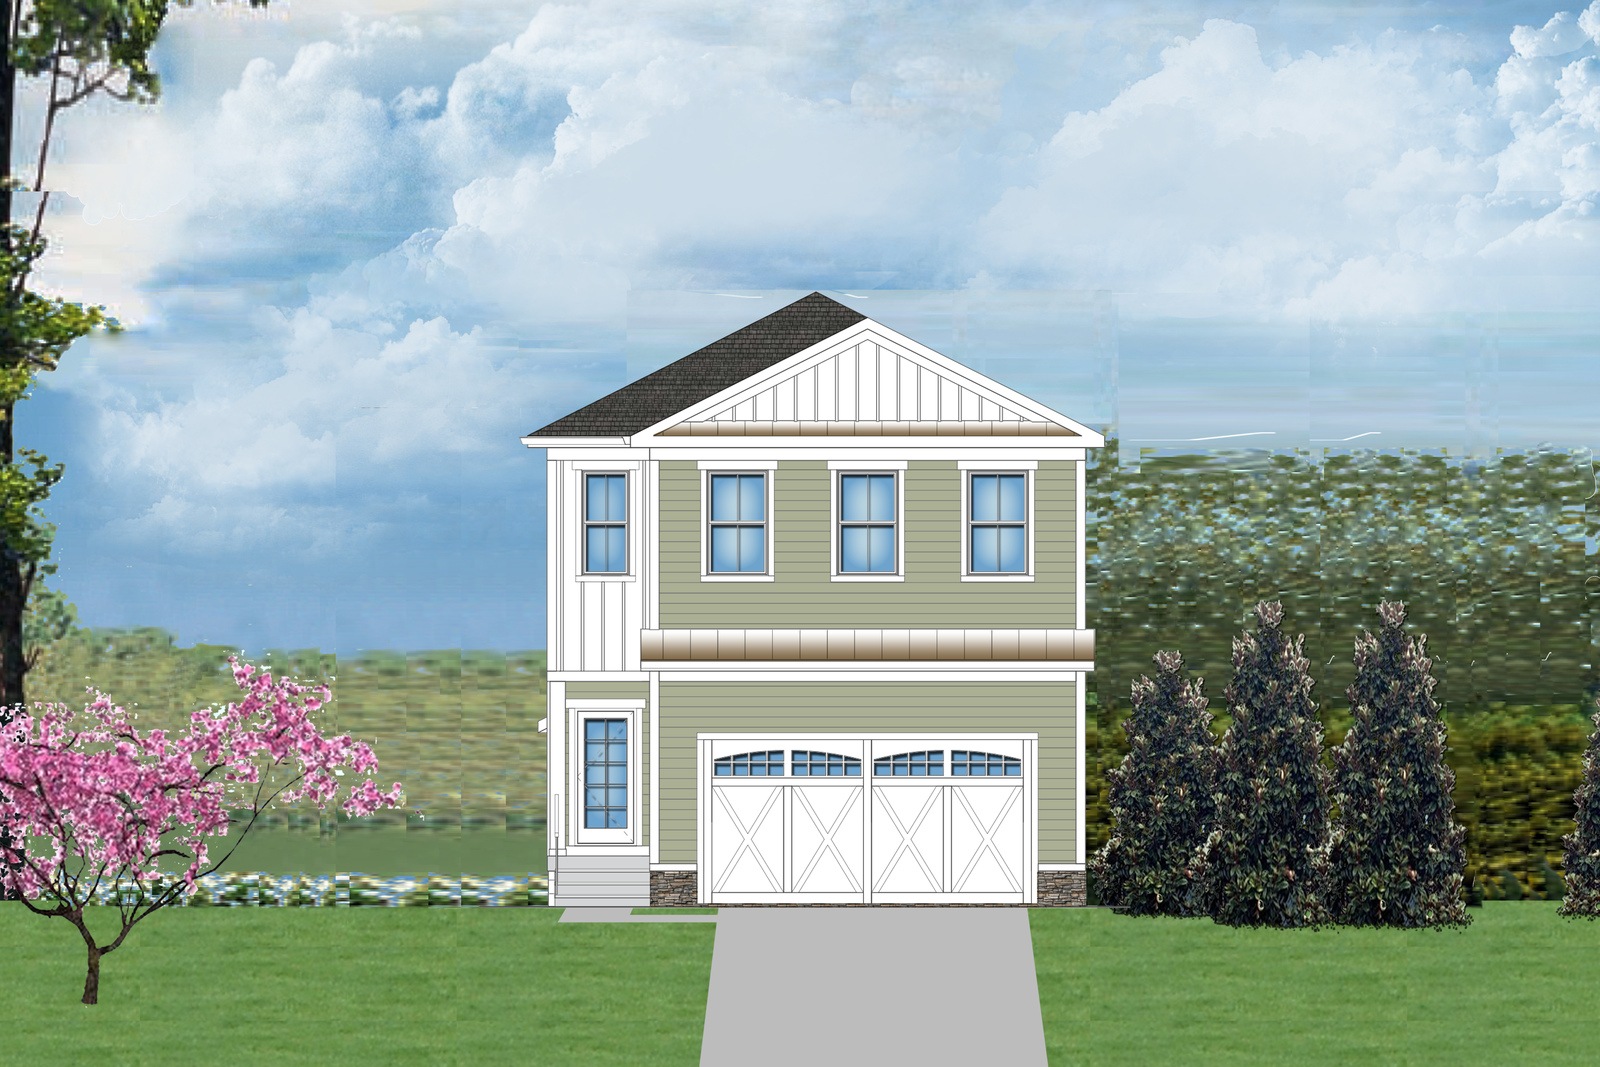 fenwick island christian singles The new york times has 7 homes for sale in fenwick island find the latest open houses, price reductions and homes new to the market with guidance from experts who live here too.